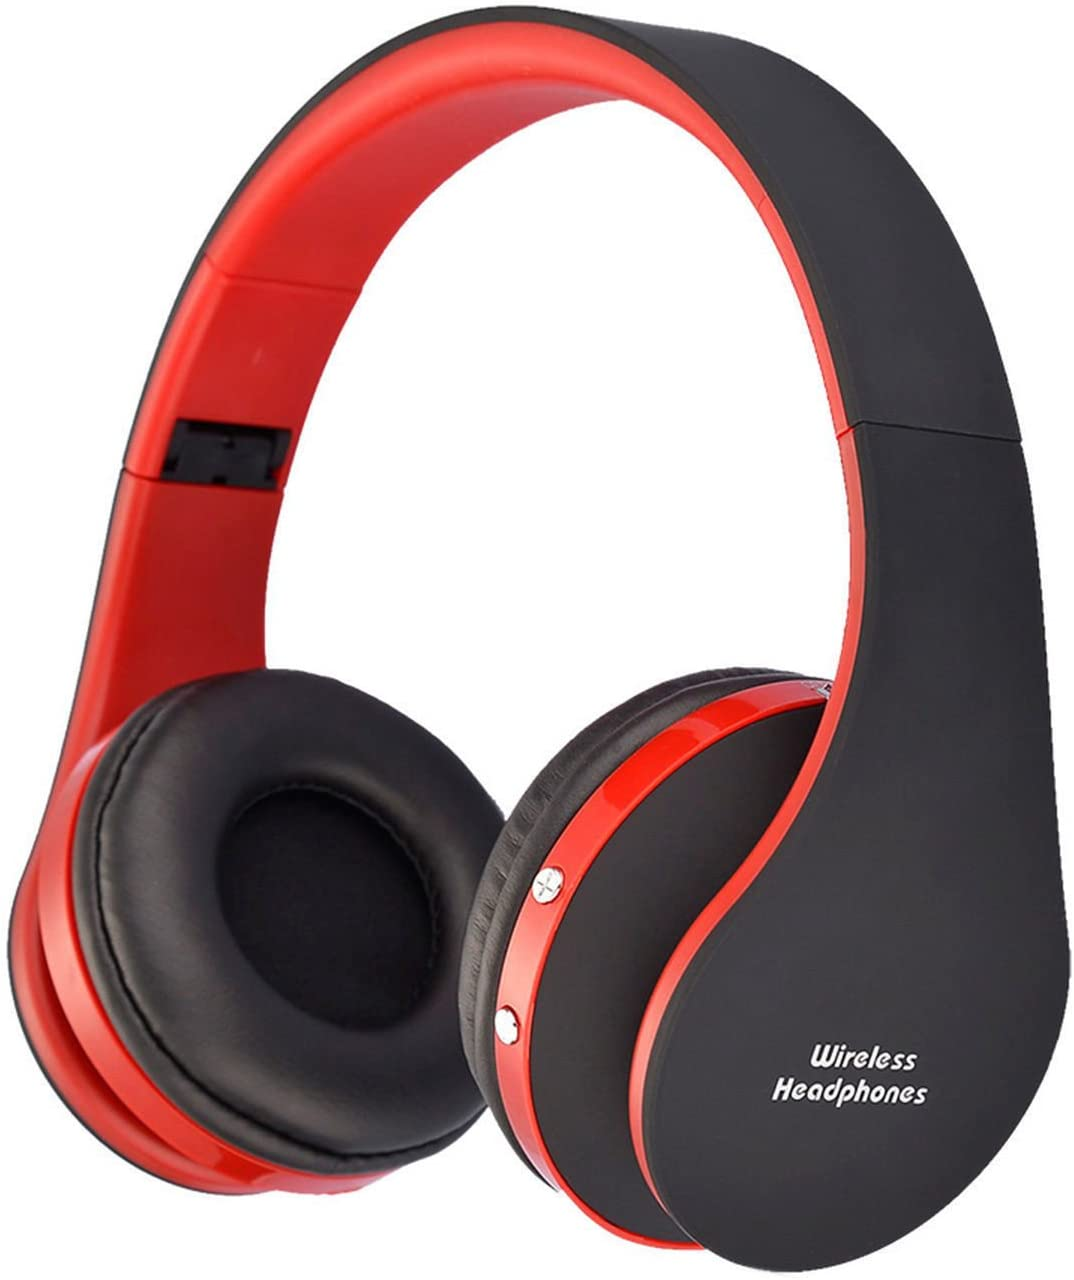 AIYIBEN Bluetooth Wireless Over-Ear Stereo Headphones Wireless Wired Headsets with Microphone for Music Streaming for iPhone 7 Plus 7 Samsung Galaxy, Smart Phones Bluetooth Devices Red